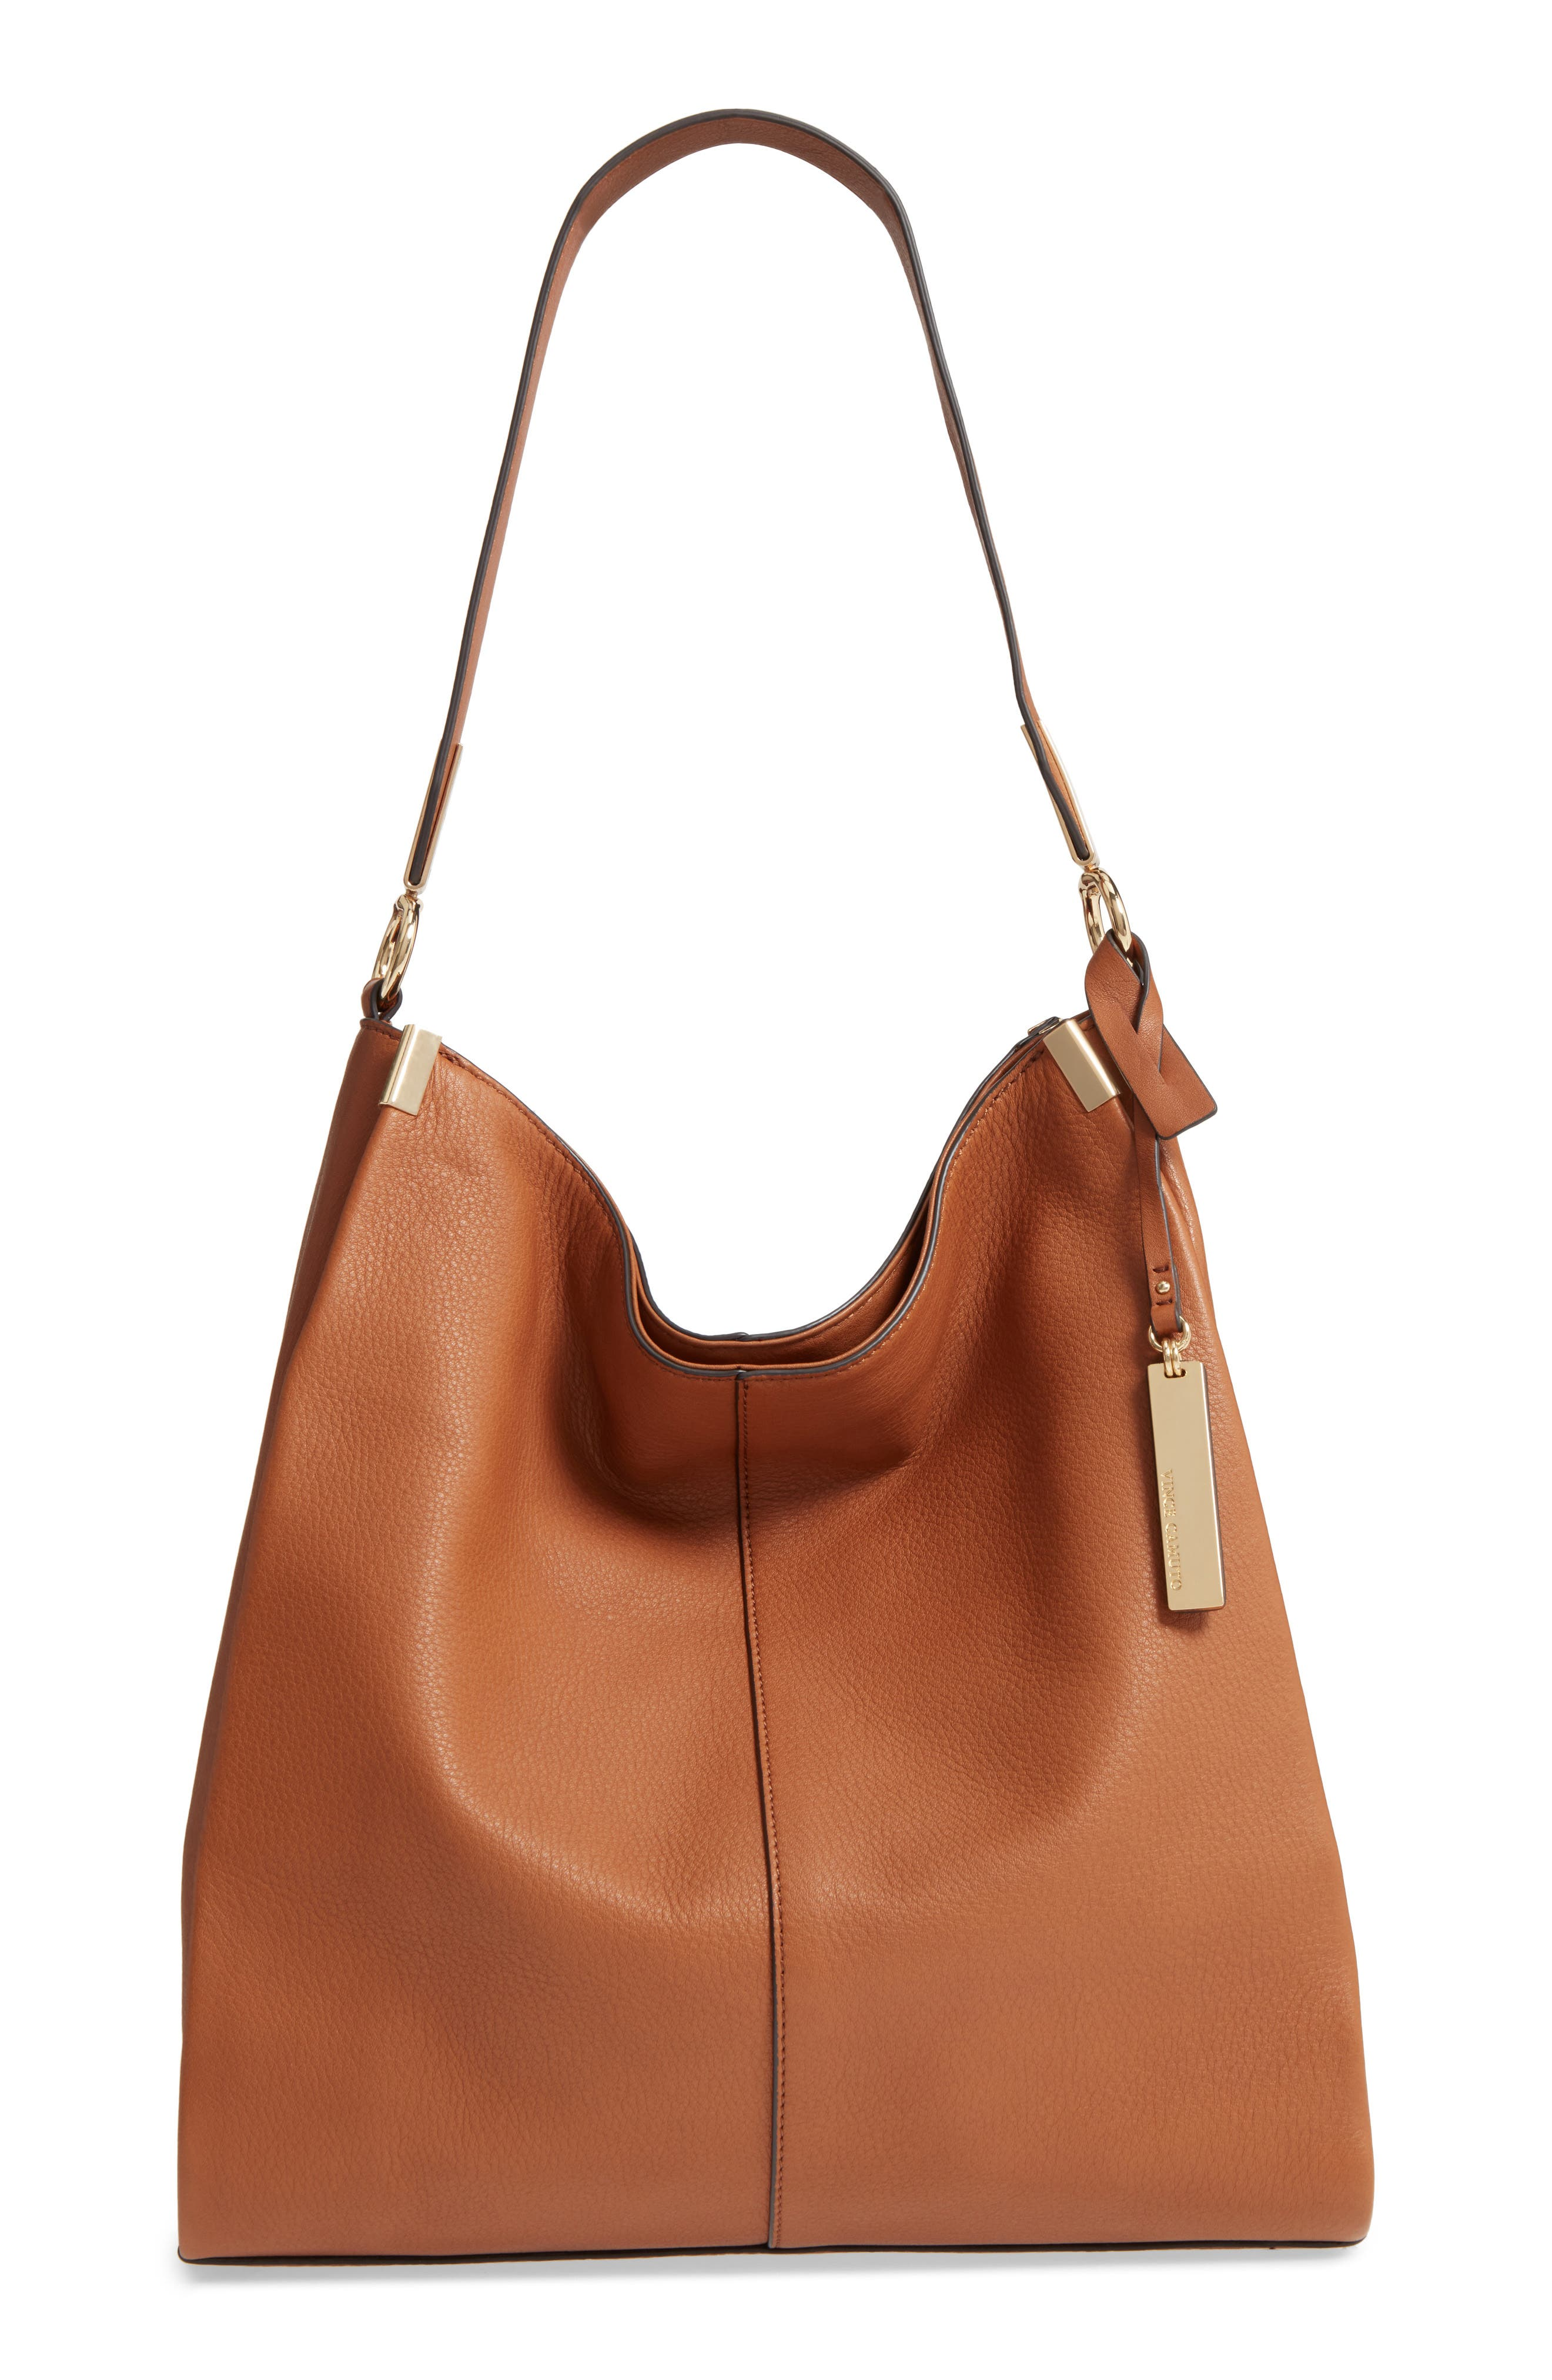 Main Image - Vince Camuto Rosen Leather Hobo